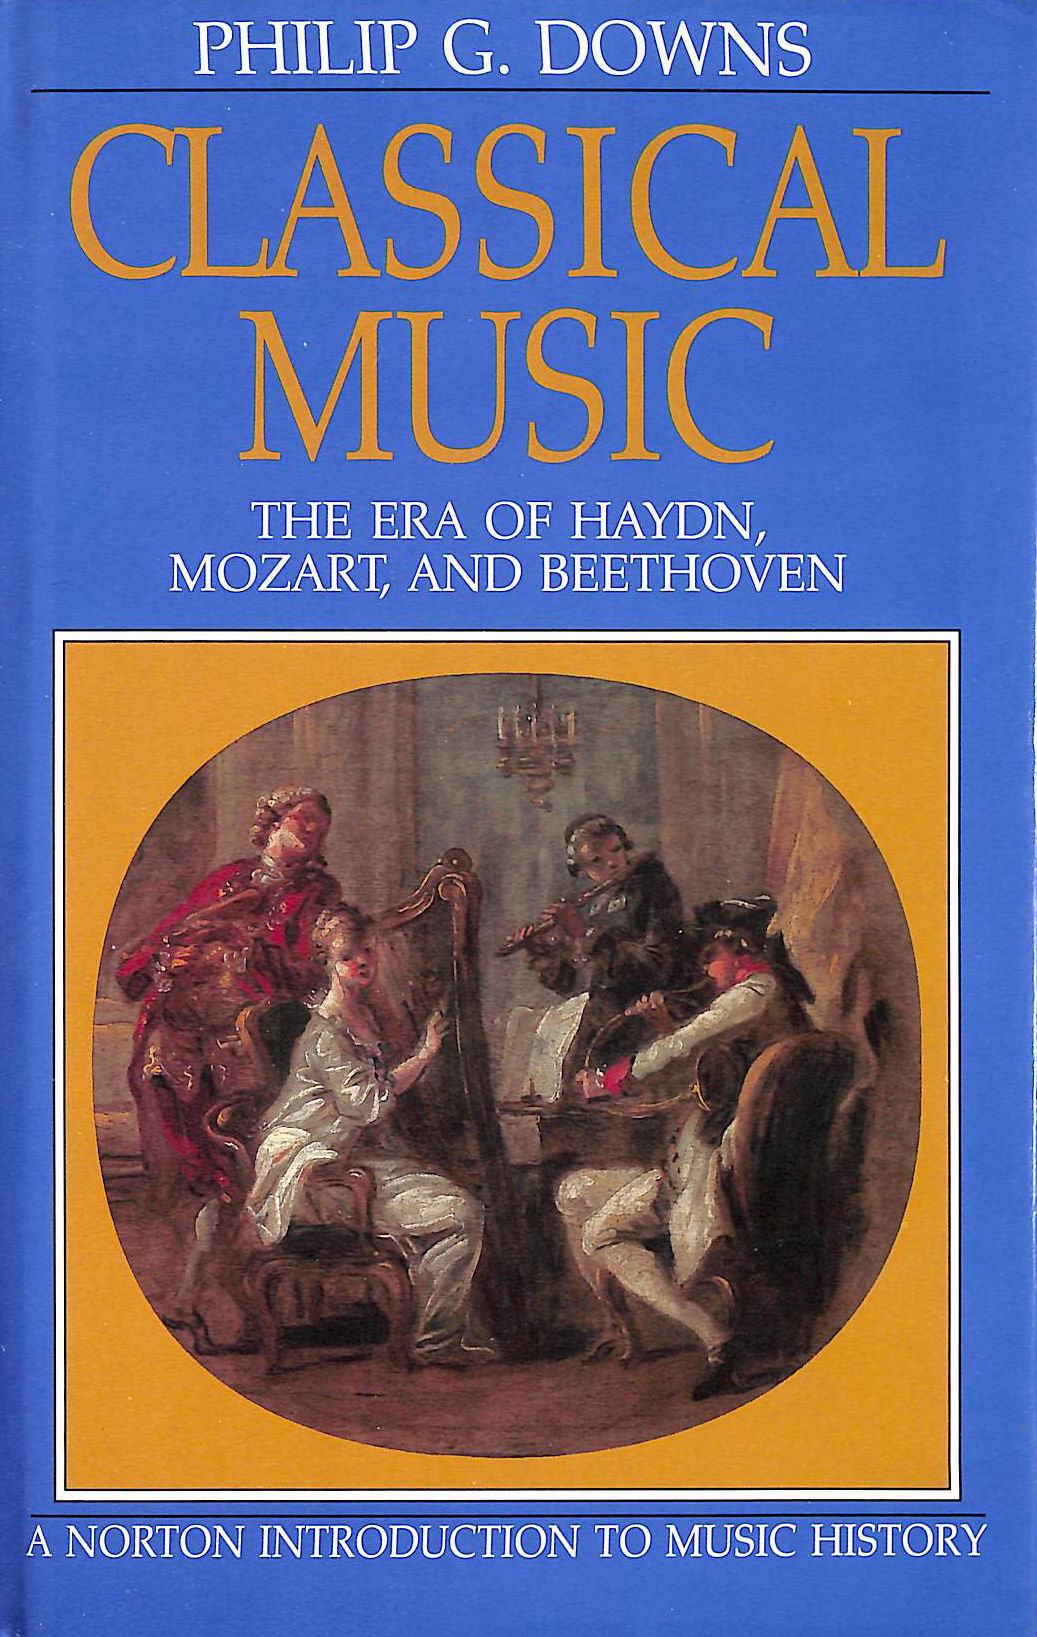 Image for Classical Music: The Era of Haydn, Mozart, and Beethoven